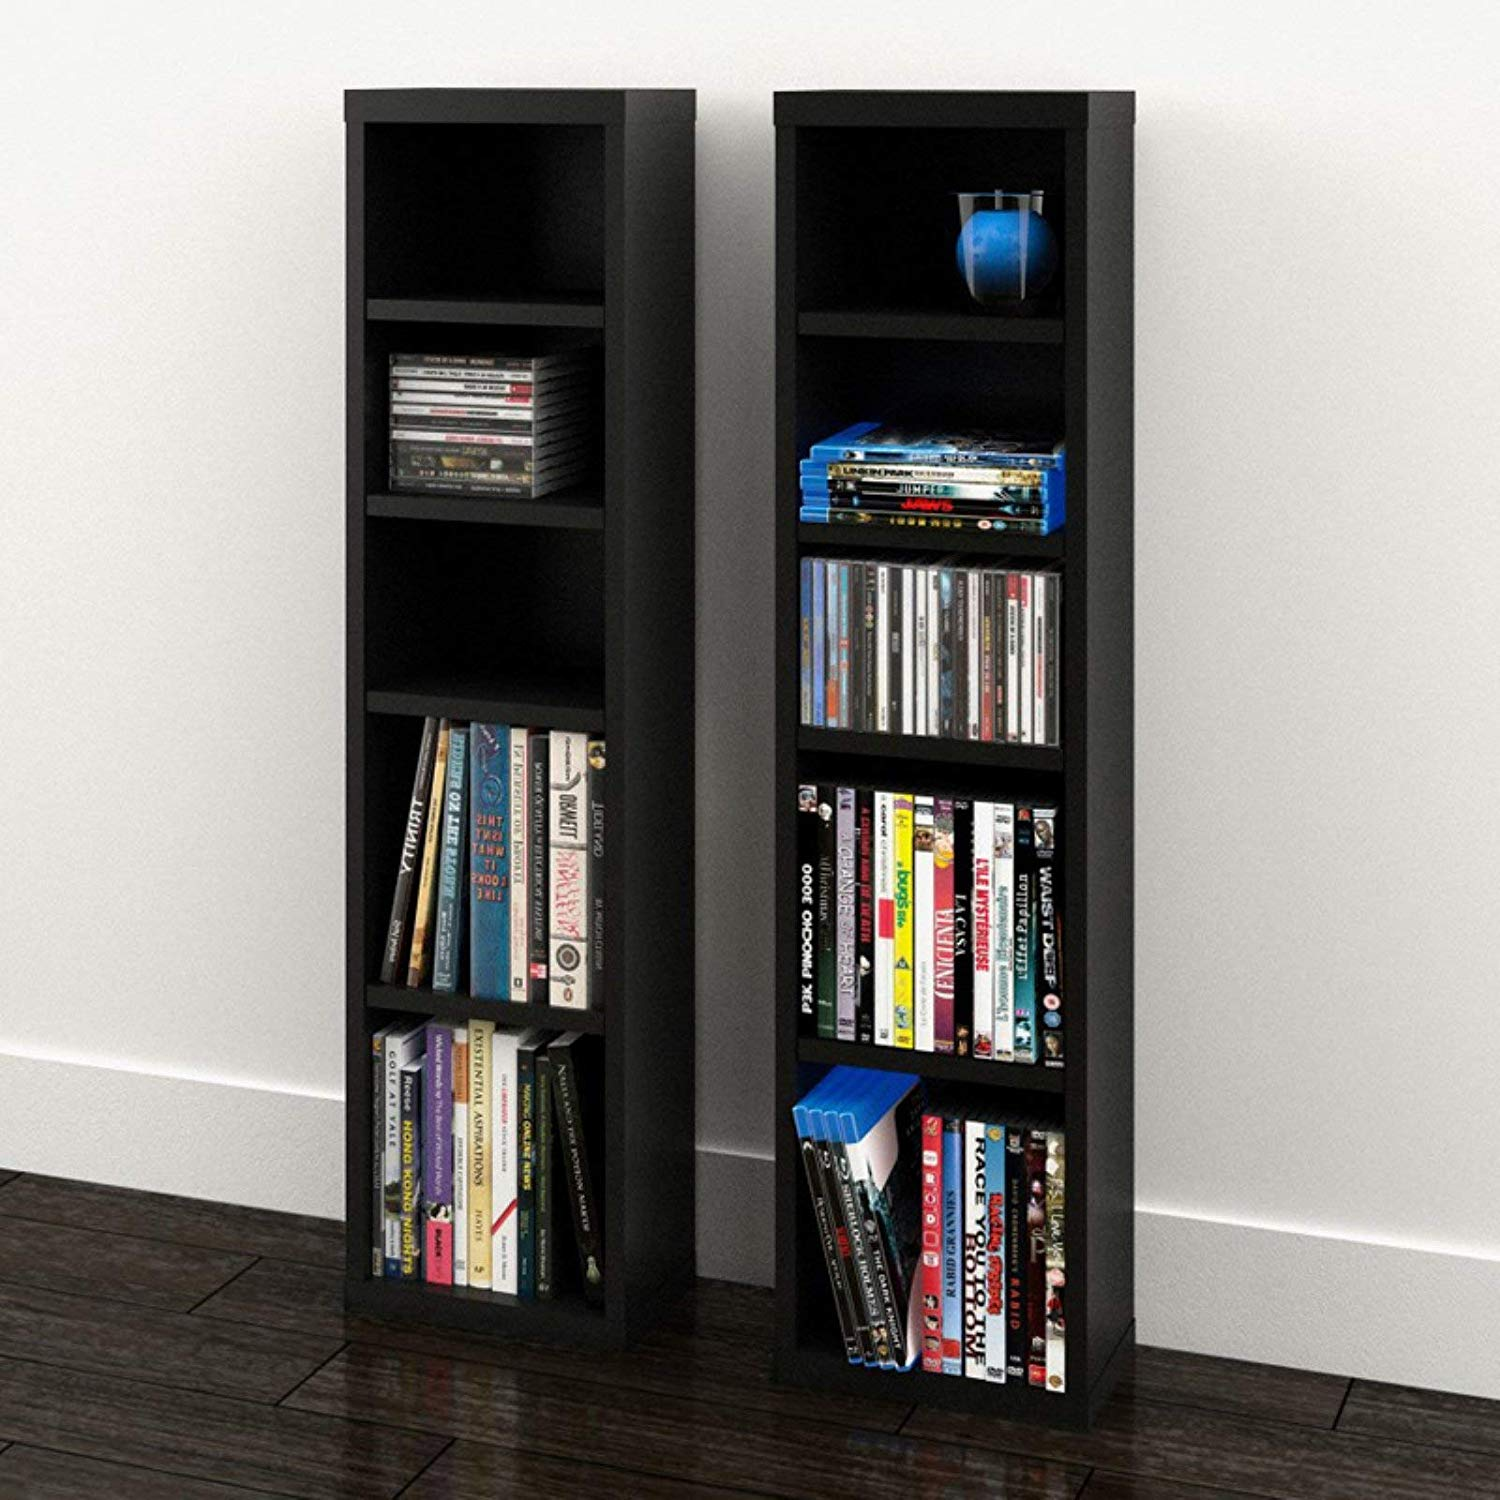 Care 4 Home LLC 4 Shelf Audio Media Storage Tower, Set of 2, Adjustable Legs, Modern Style, Practical, Saves Space, Perfect for Living Room, Family Room, Black Color + Expert Guide